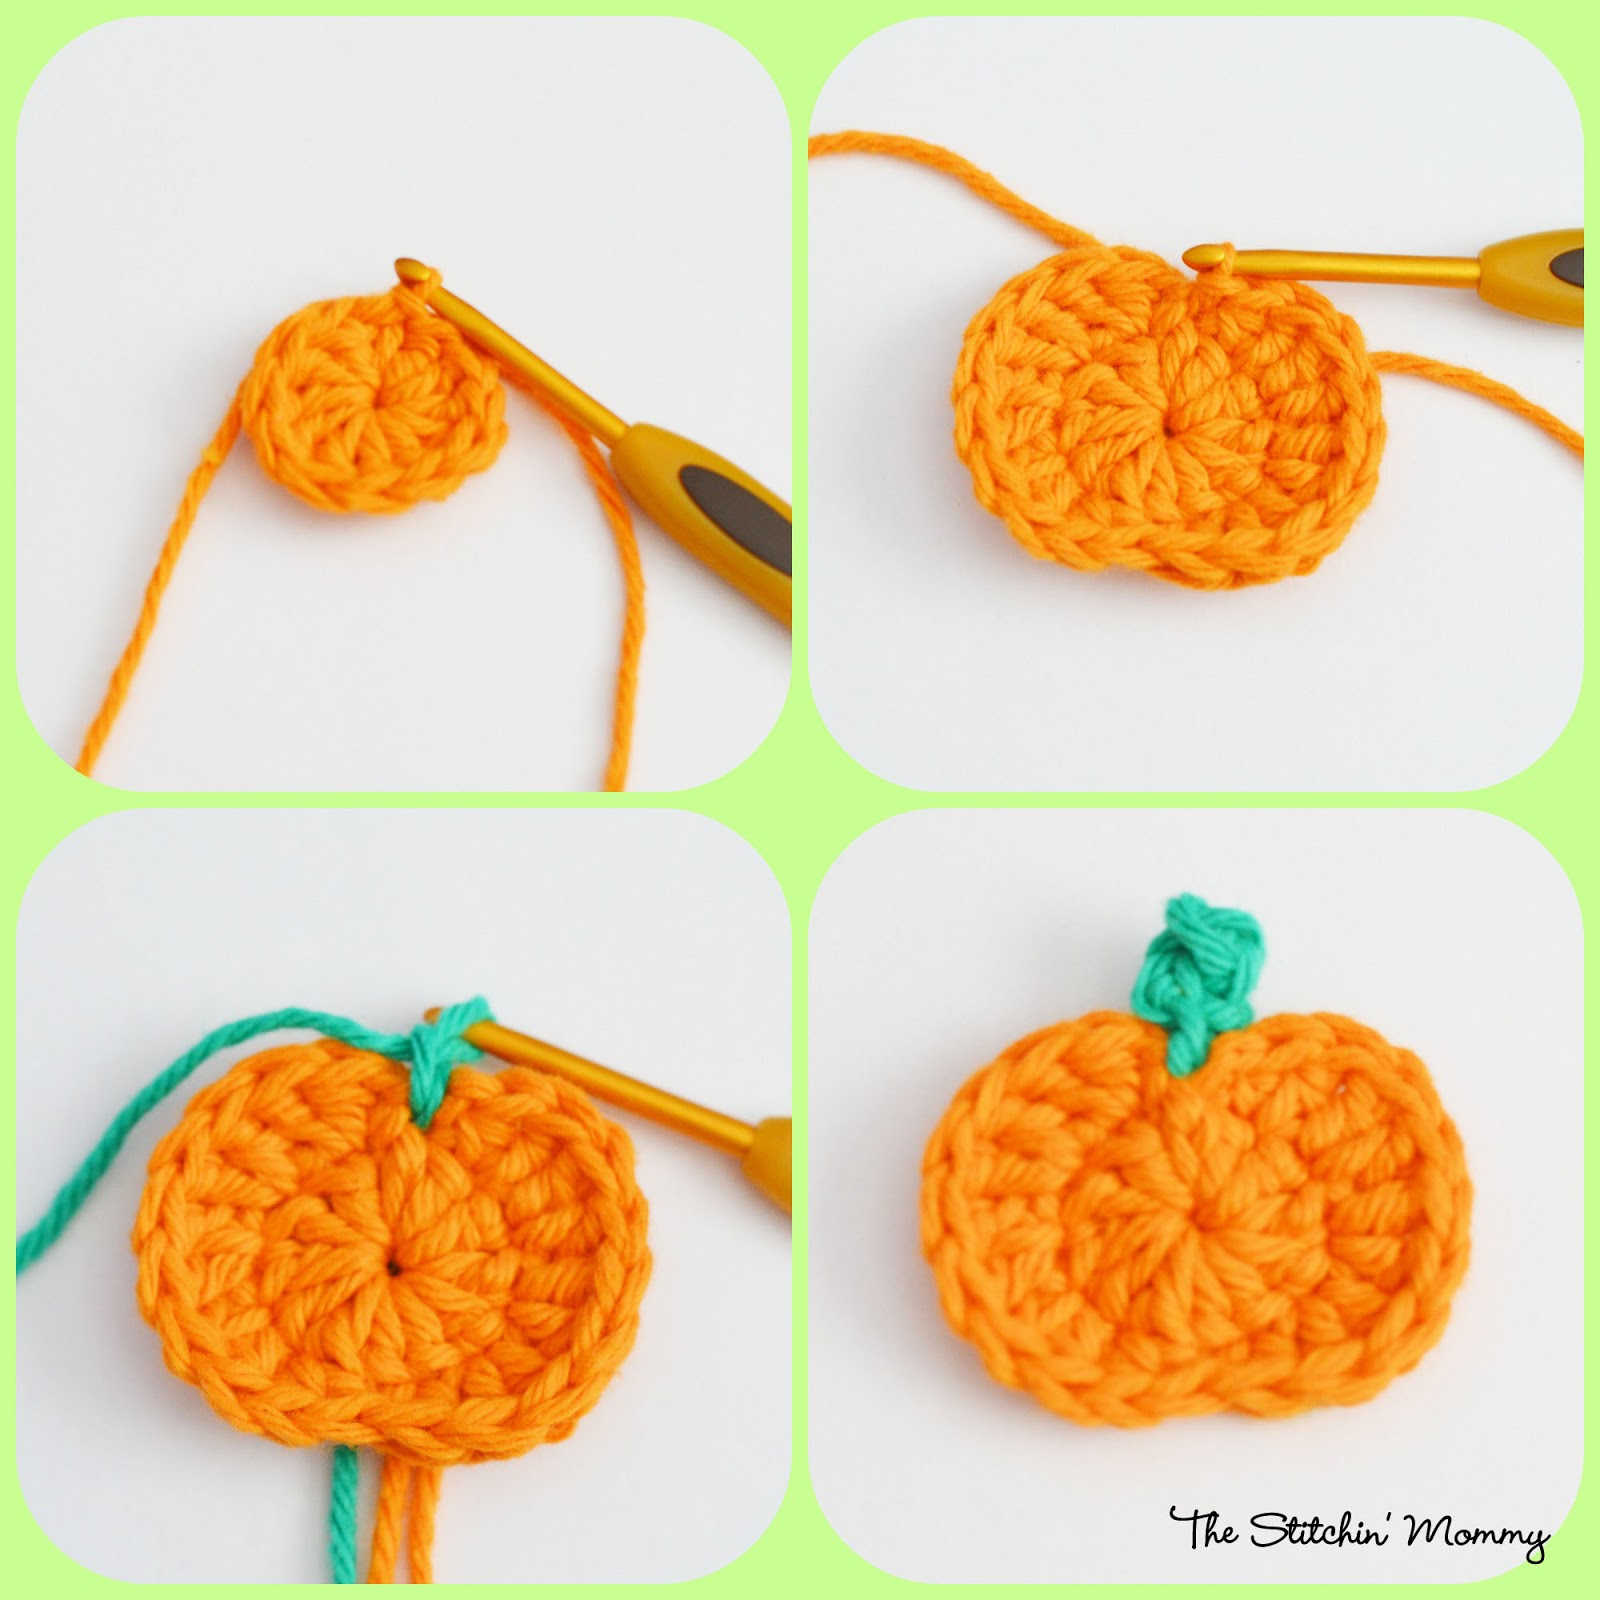 Crochet Star Stitch Pumpkin Coffee Cozy - The Stitchin Mommy